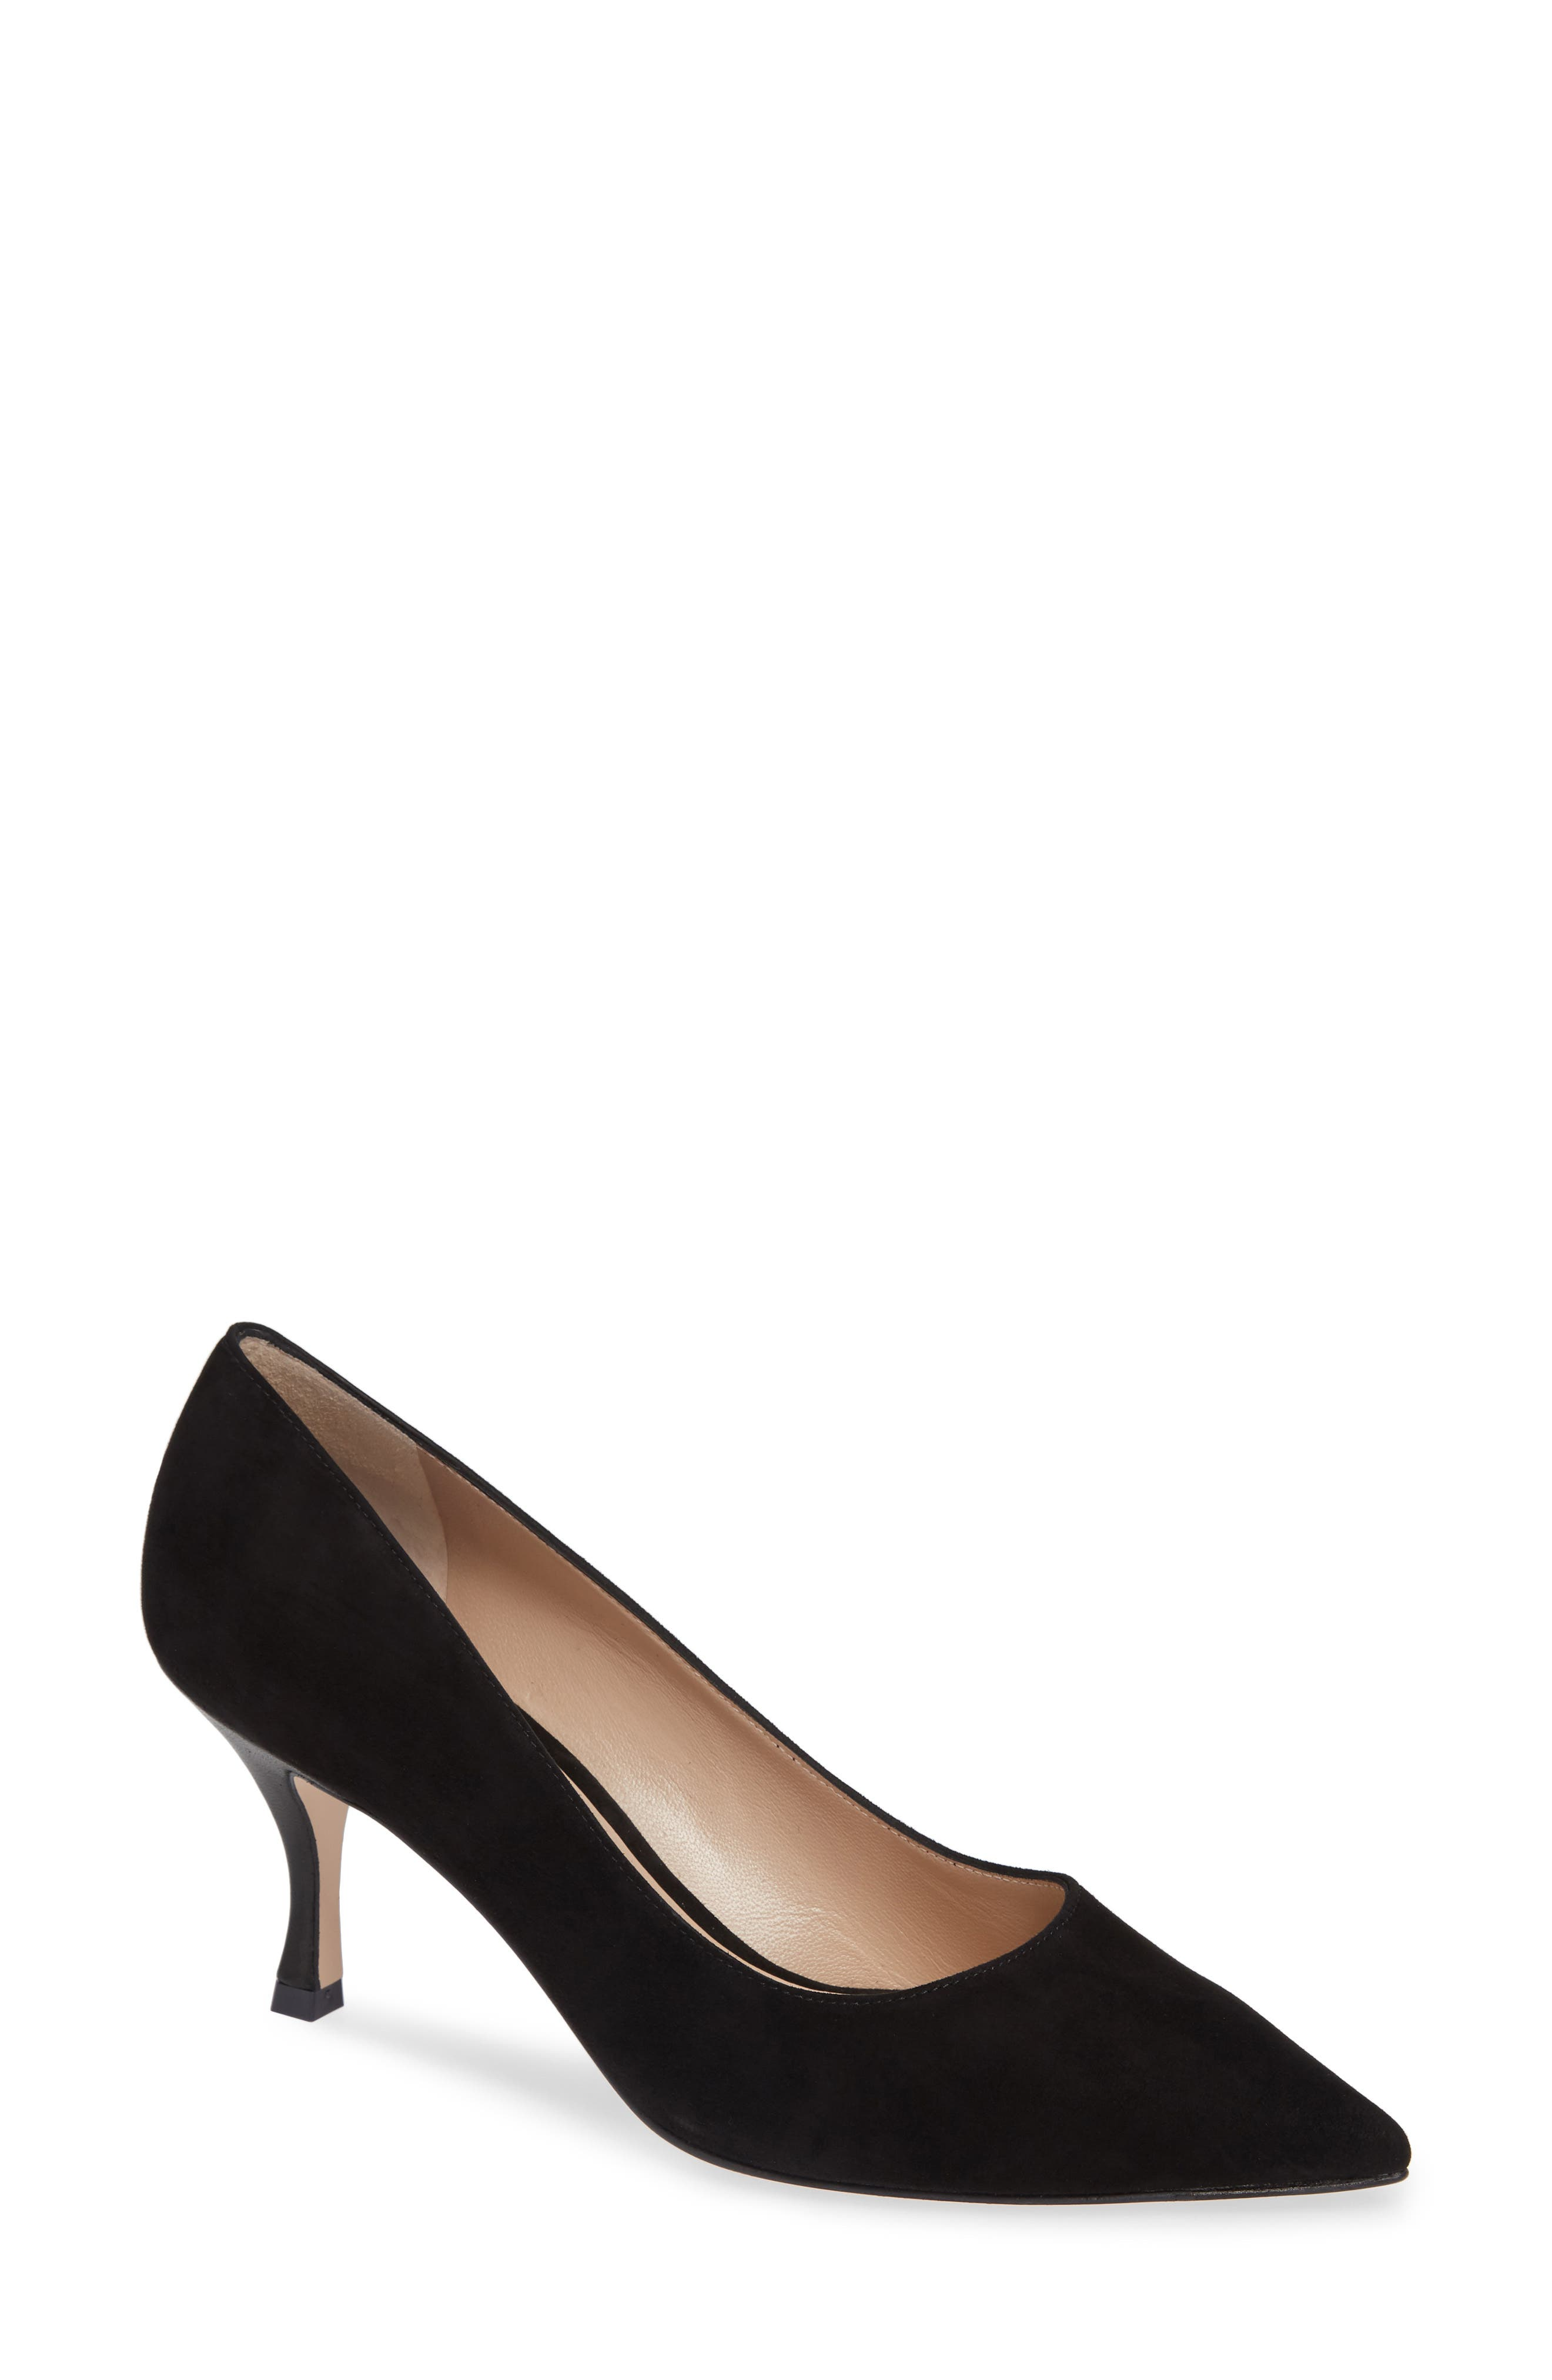 Tippi 70 Pointy Toe Pump,                             Main thumbnail 1, color,                             PITCH BLACK